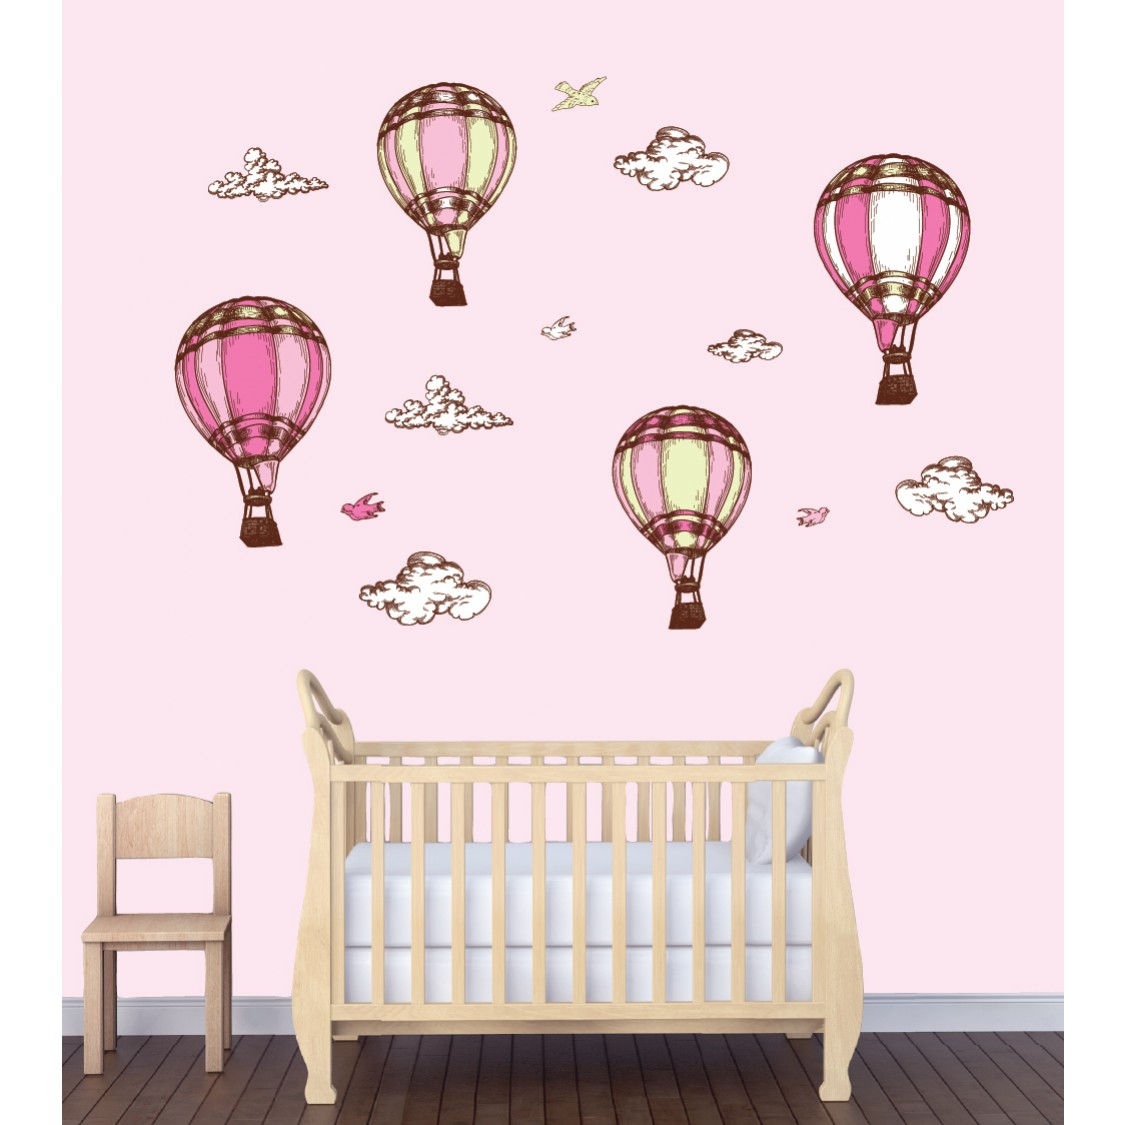 Childrens Bedroom Wall Stickers U0026 Hot Air Balloon Wall Decor For Kids Rooms